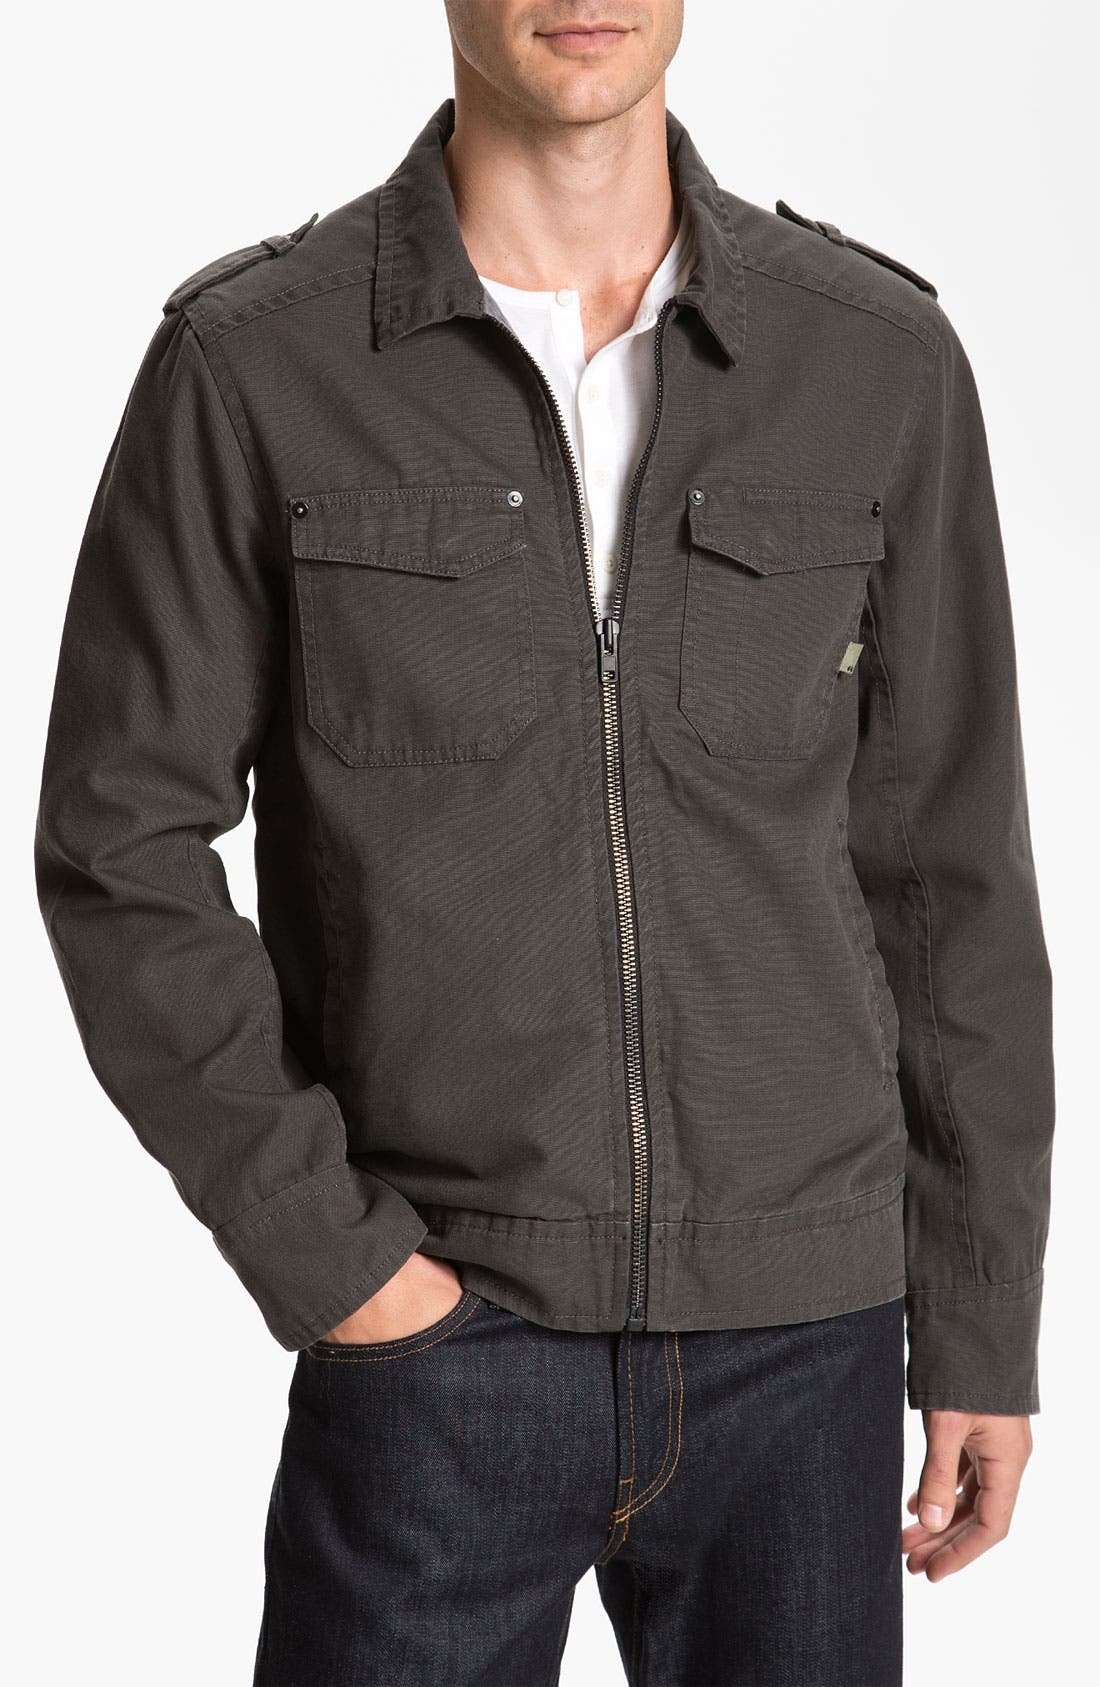 Alternate Image 1 Selected - R44 Rogan Standard Issue 'Drakers' Jacket